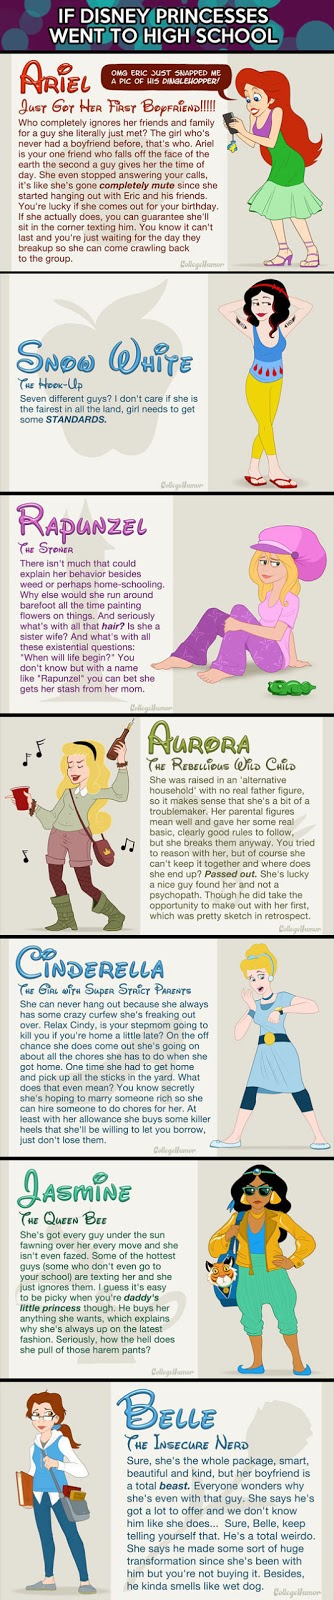 When Disney Princesses Go To High School